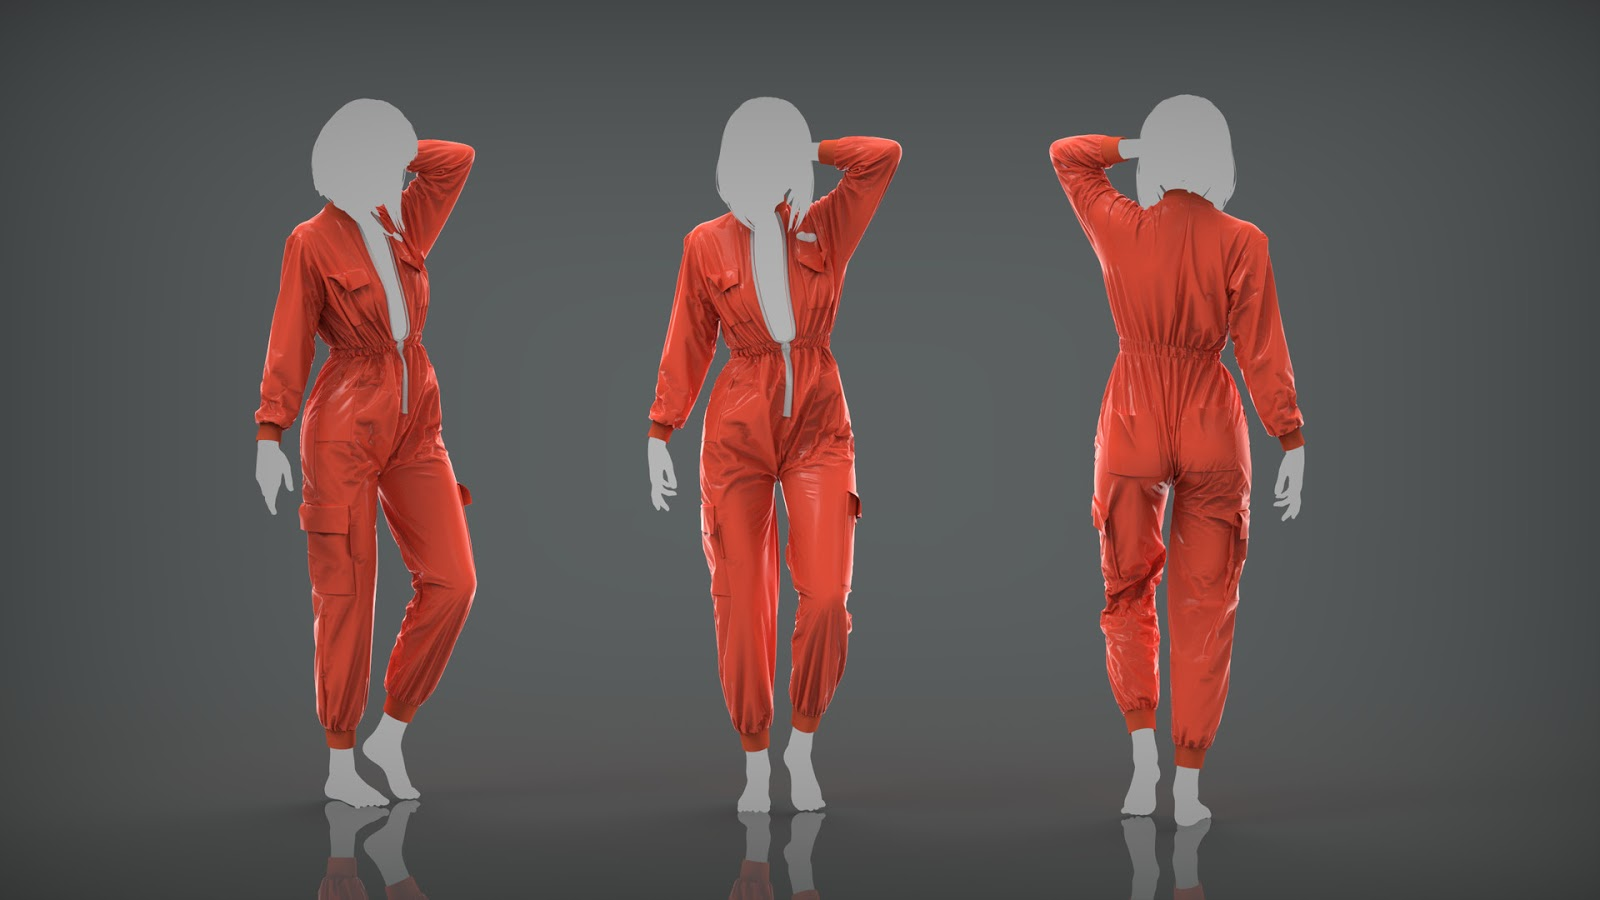 New Update Of Cloth Simulation Tool Marvelous Designer 7 5 Is Here Computer Graphics Daily News